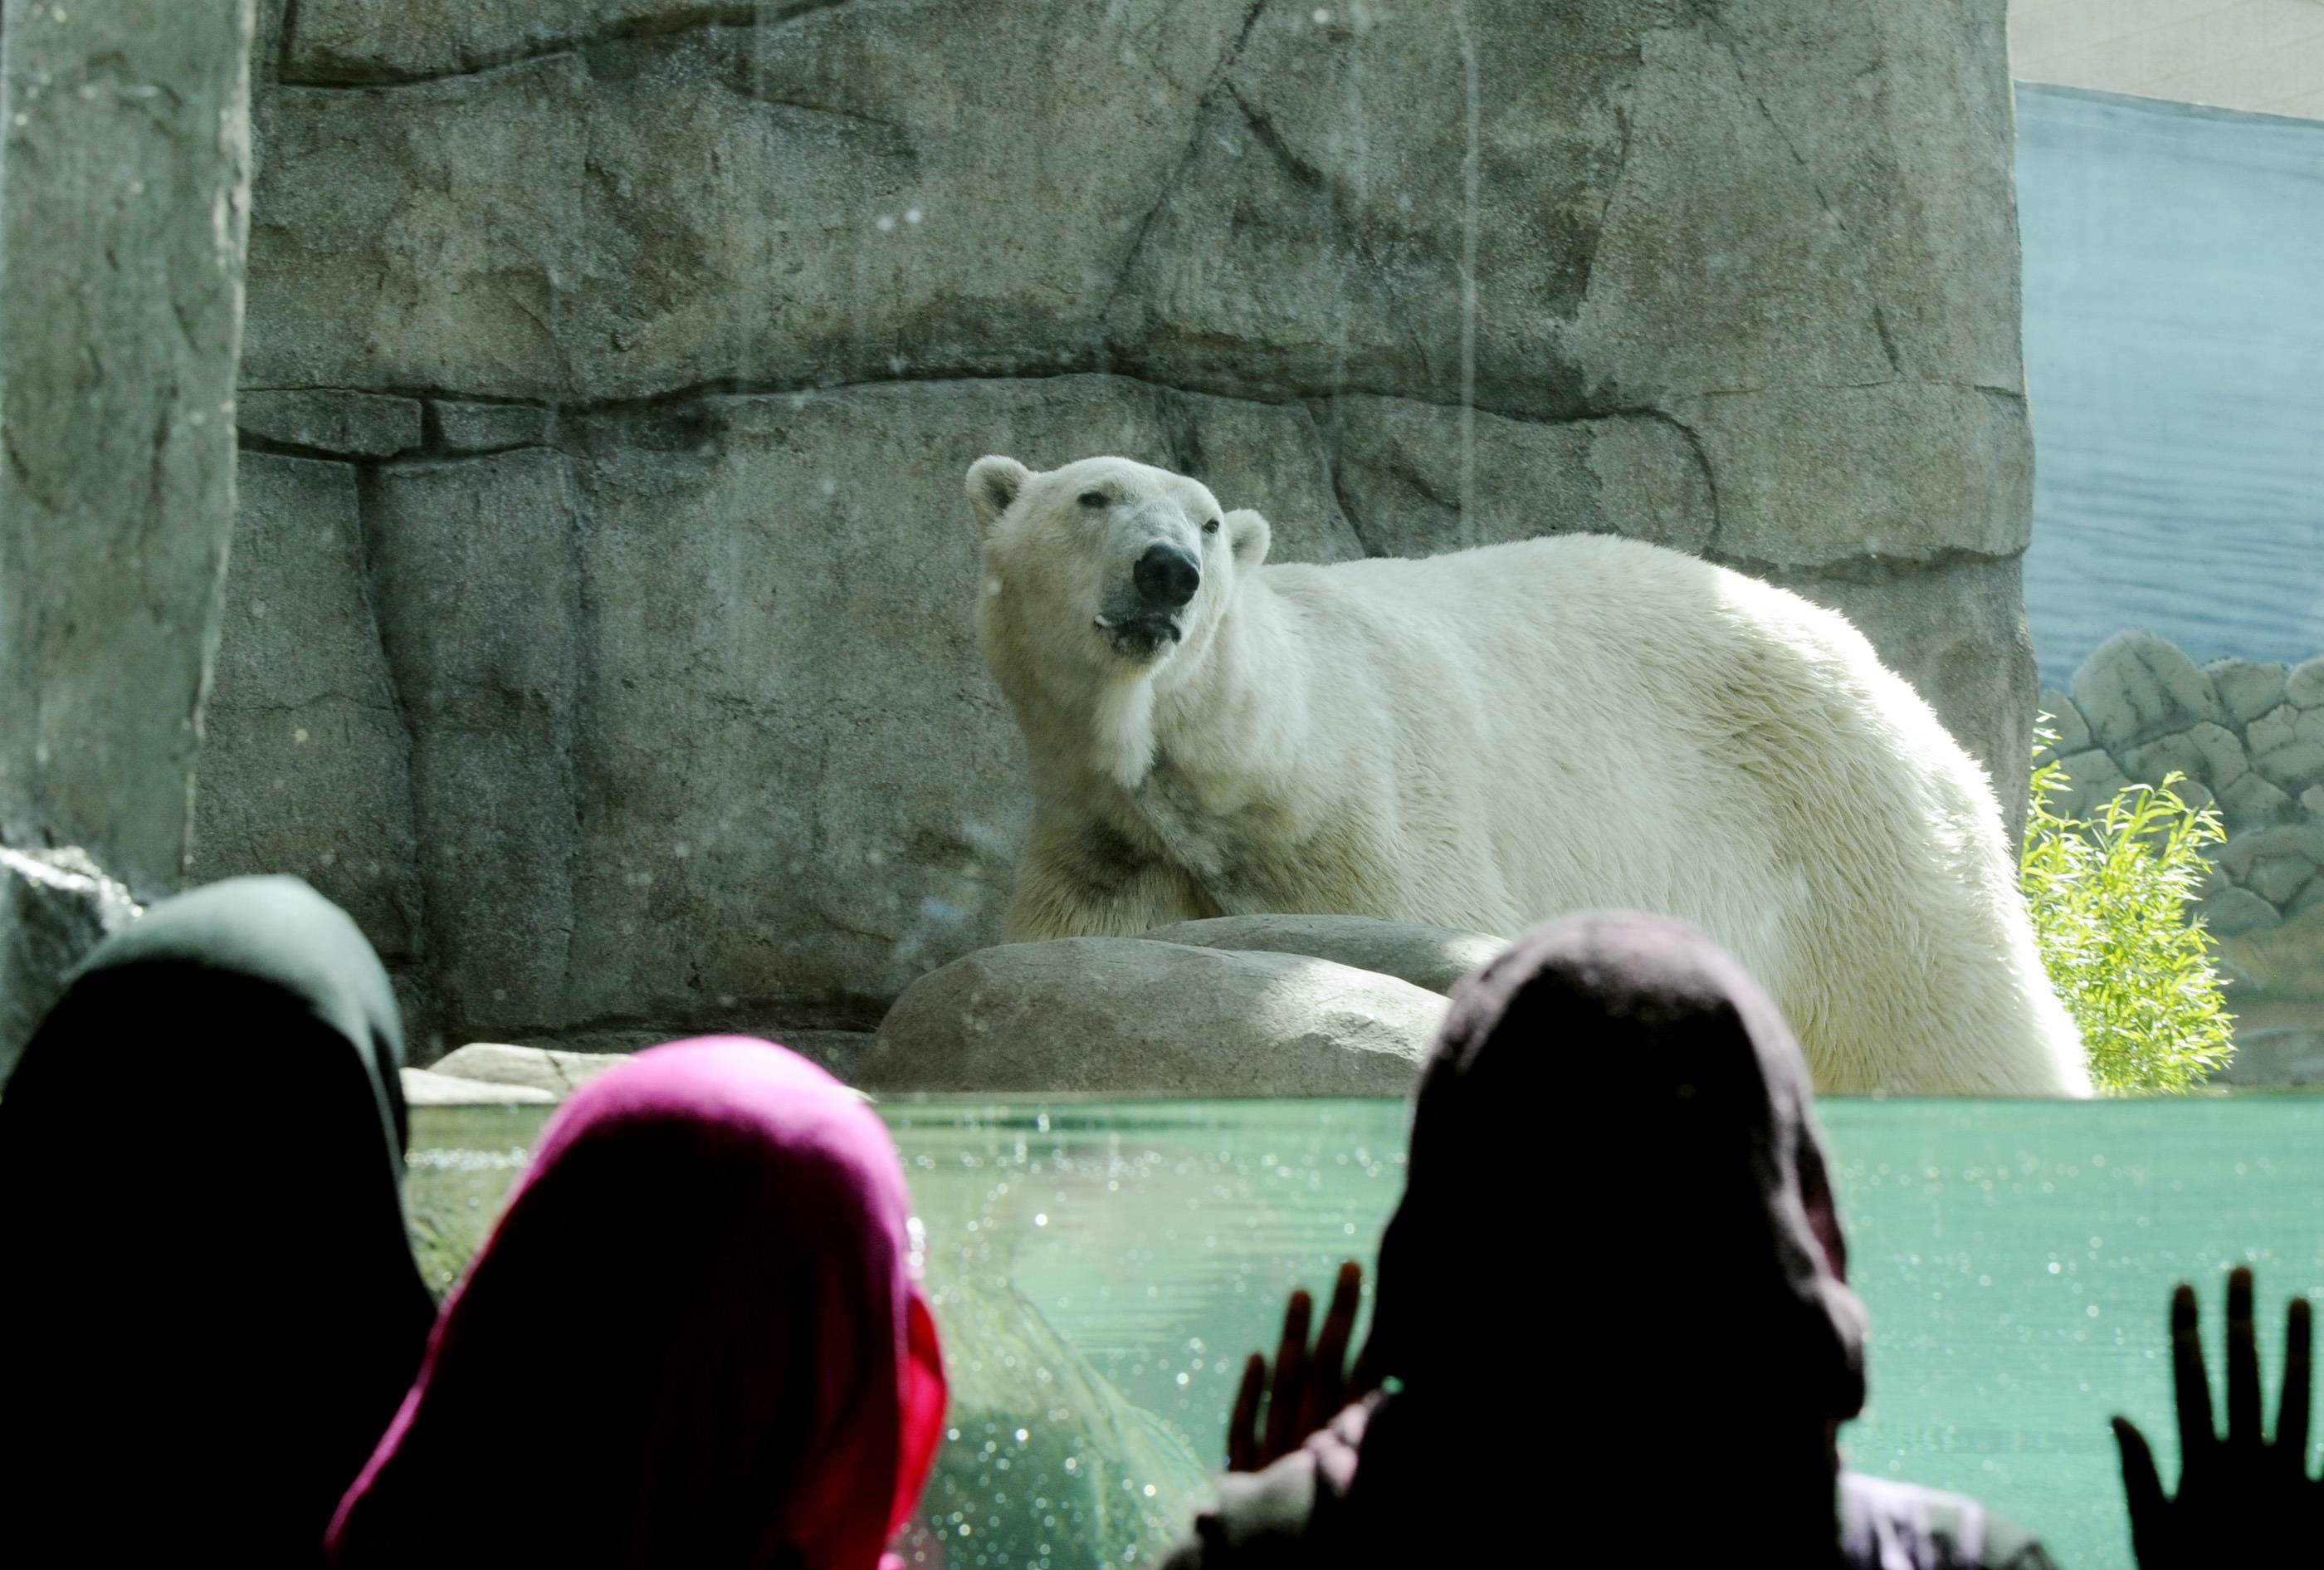 Young visitors watch one of the polar bears at the Polar Bear Odyssey exhibit at Como Zoo in St. Paul, Minn. St. Paul's Como Park Zoo is small enough to be kid-friendly, but big enough to hold lions and tigers and polar bears. Zoo keepers give daily free talks.